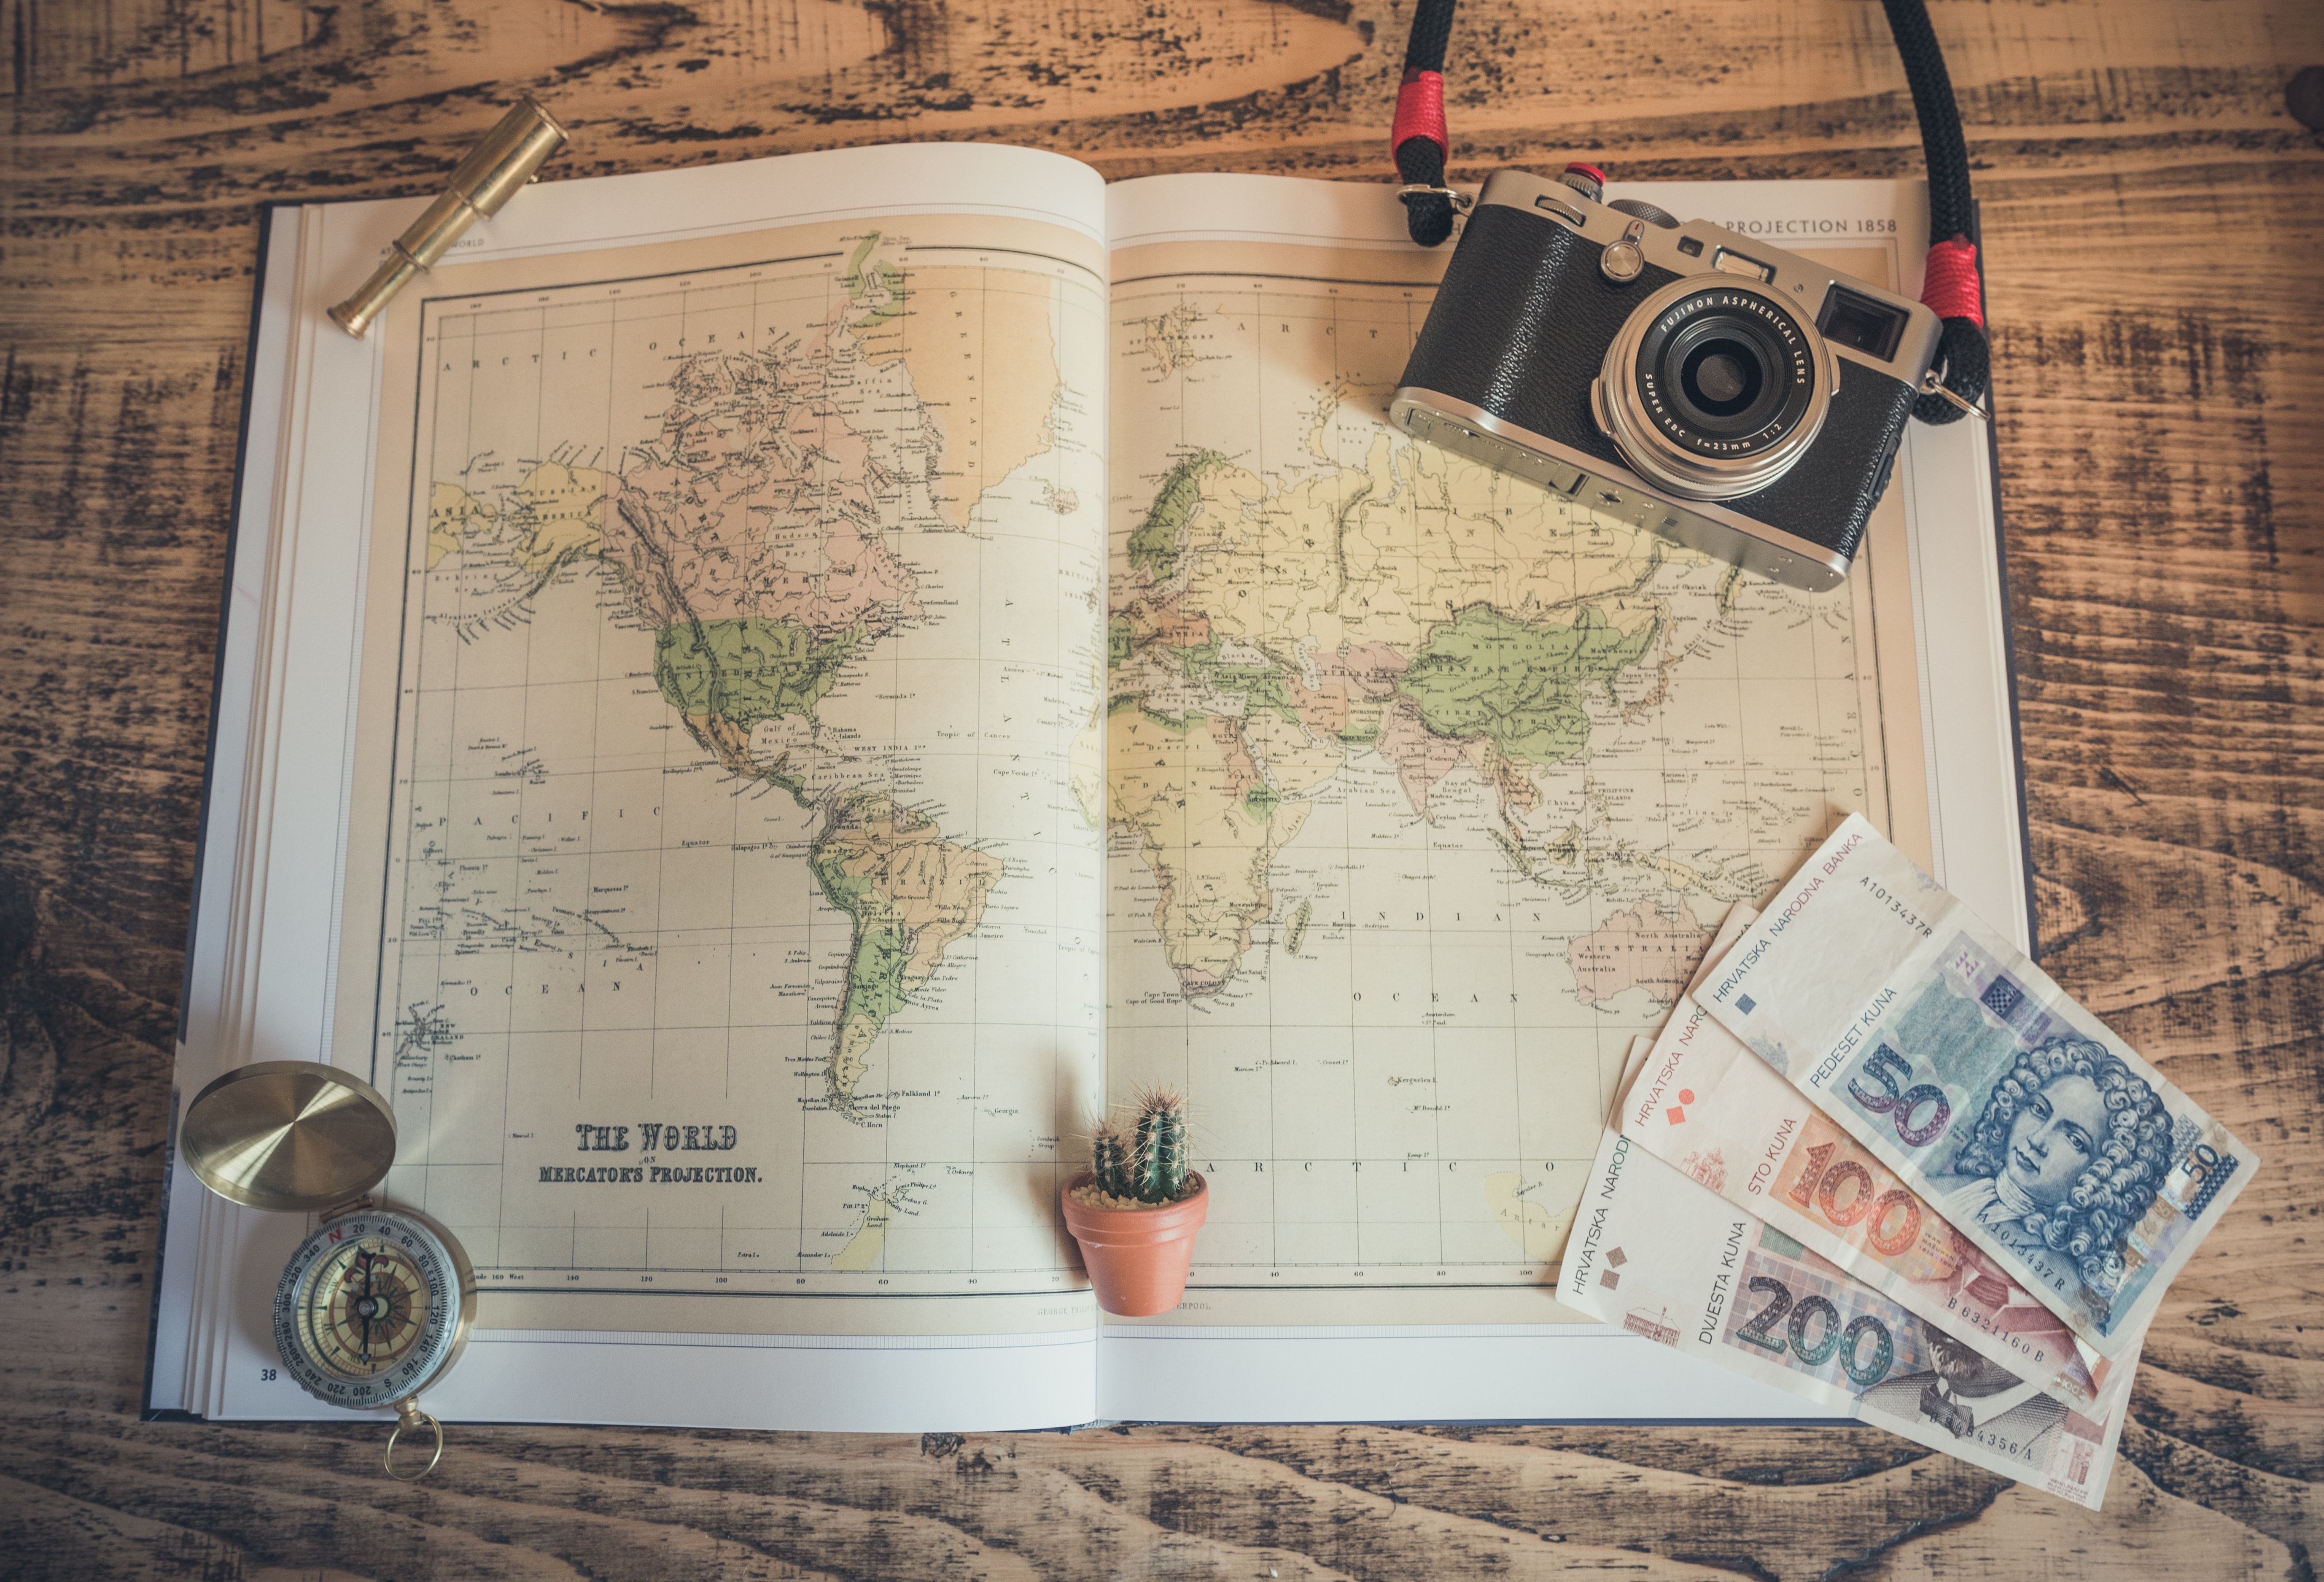 Flat lay photography of a world map, money, compass, cactus and a tiny telescope model.